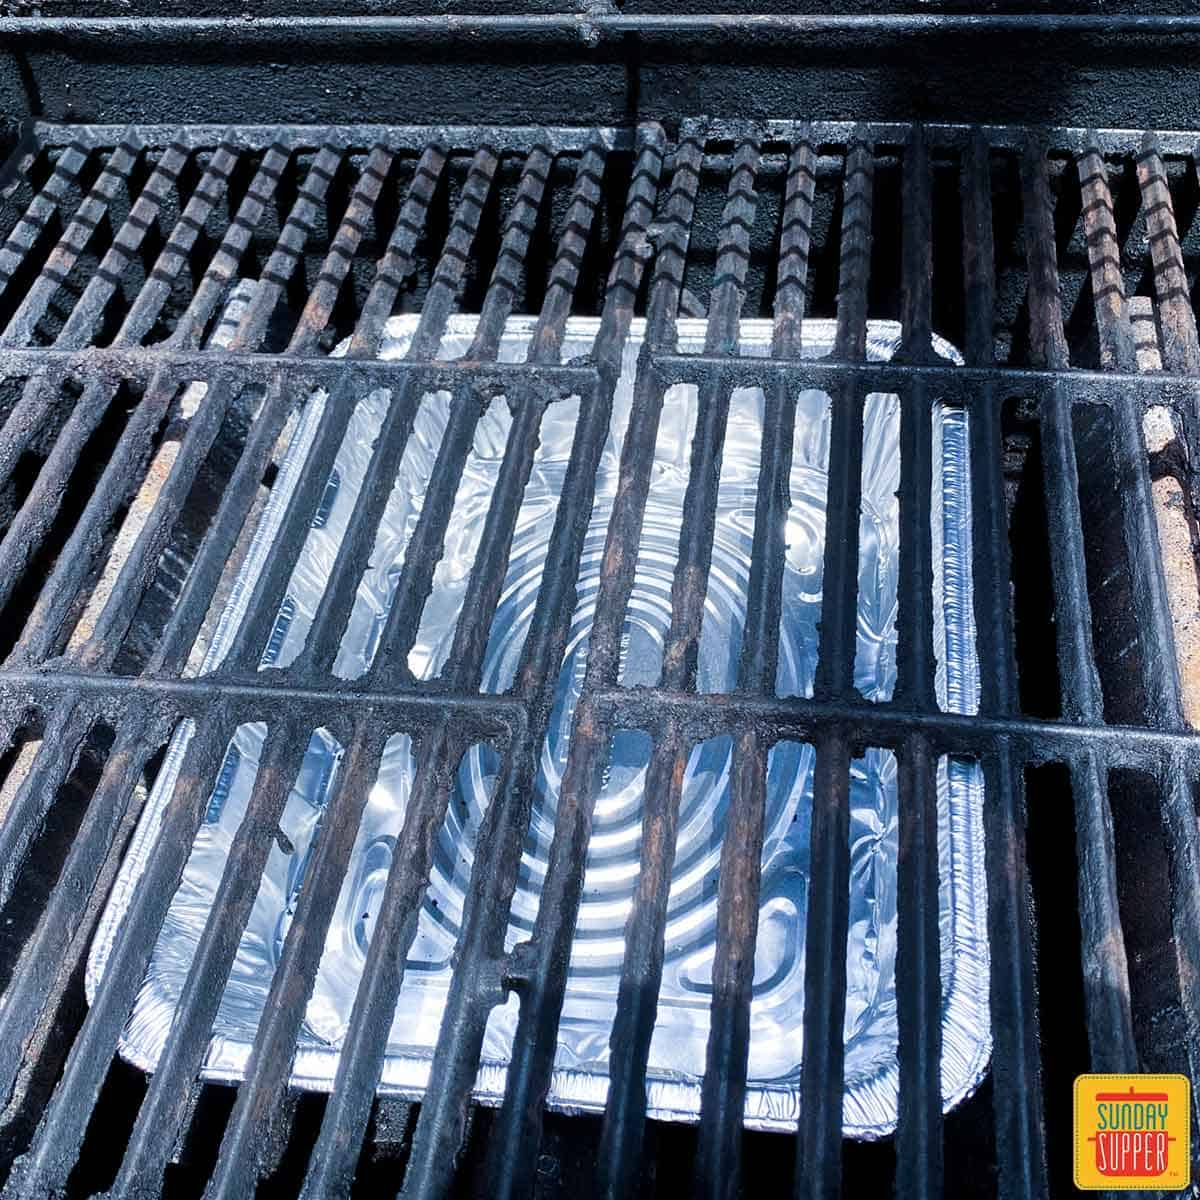 Aluminum tray under grill rack